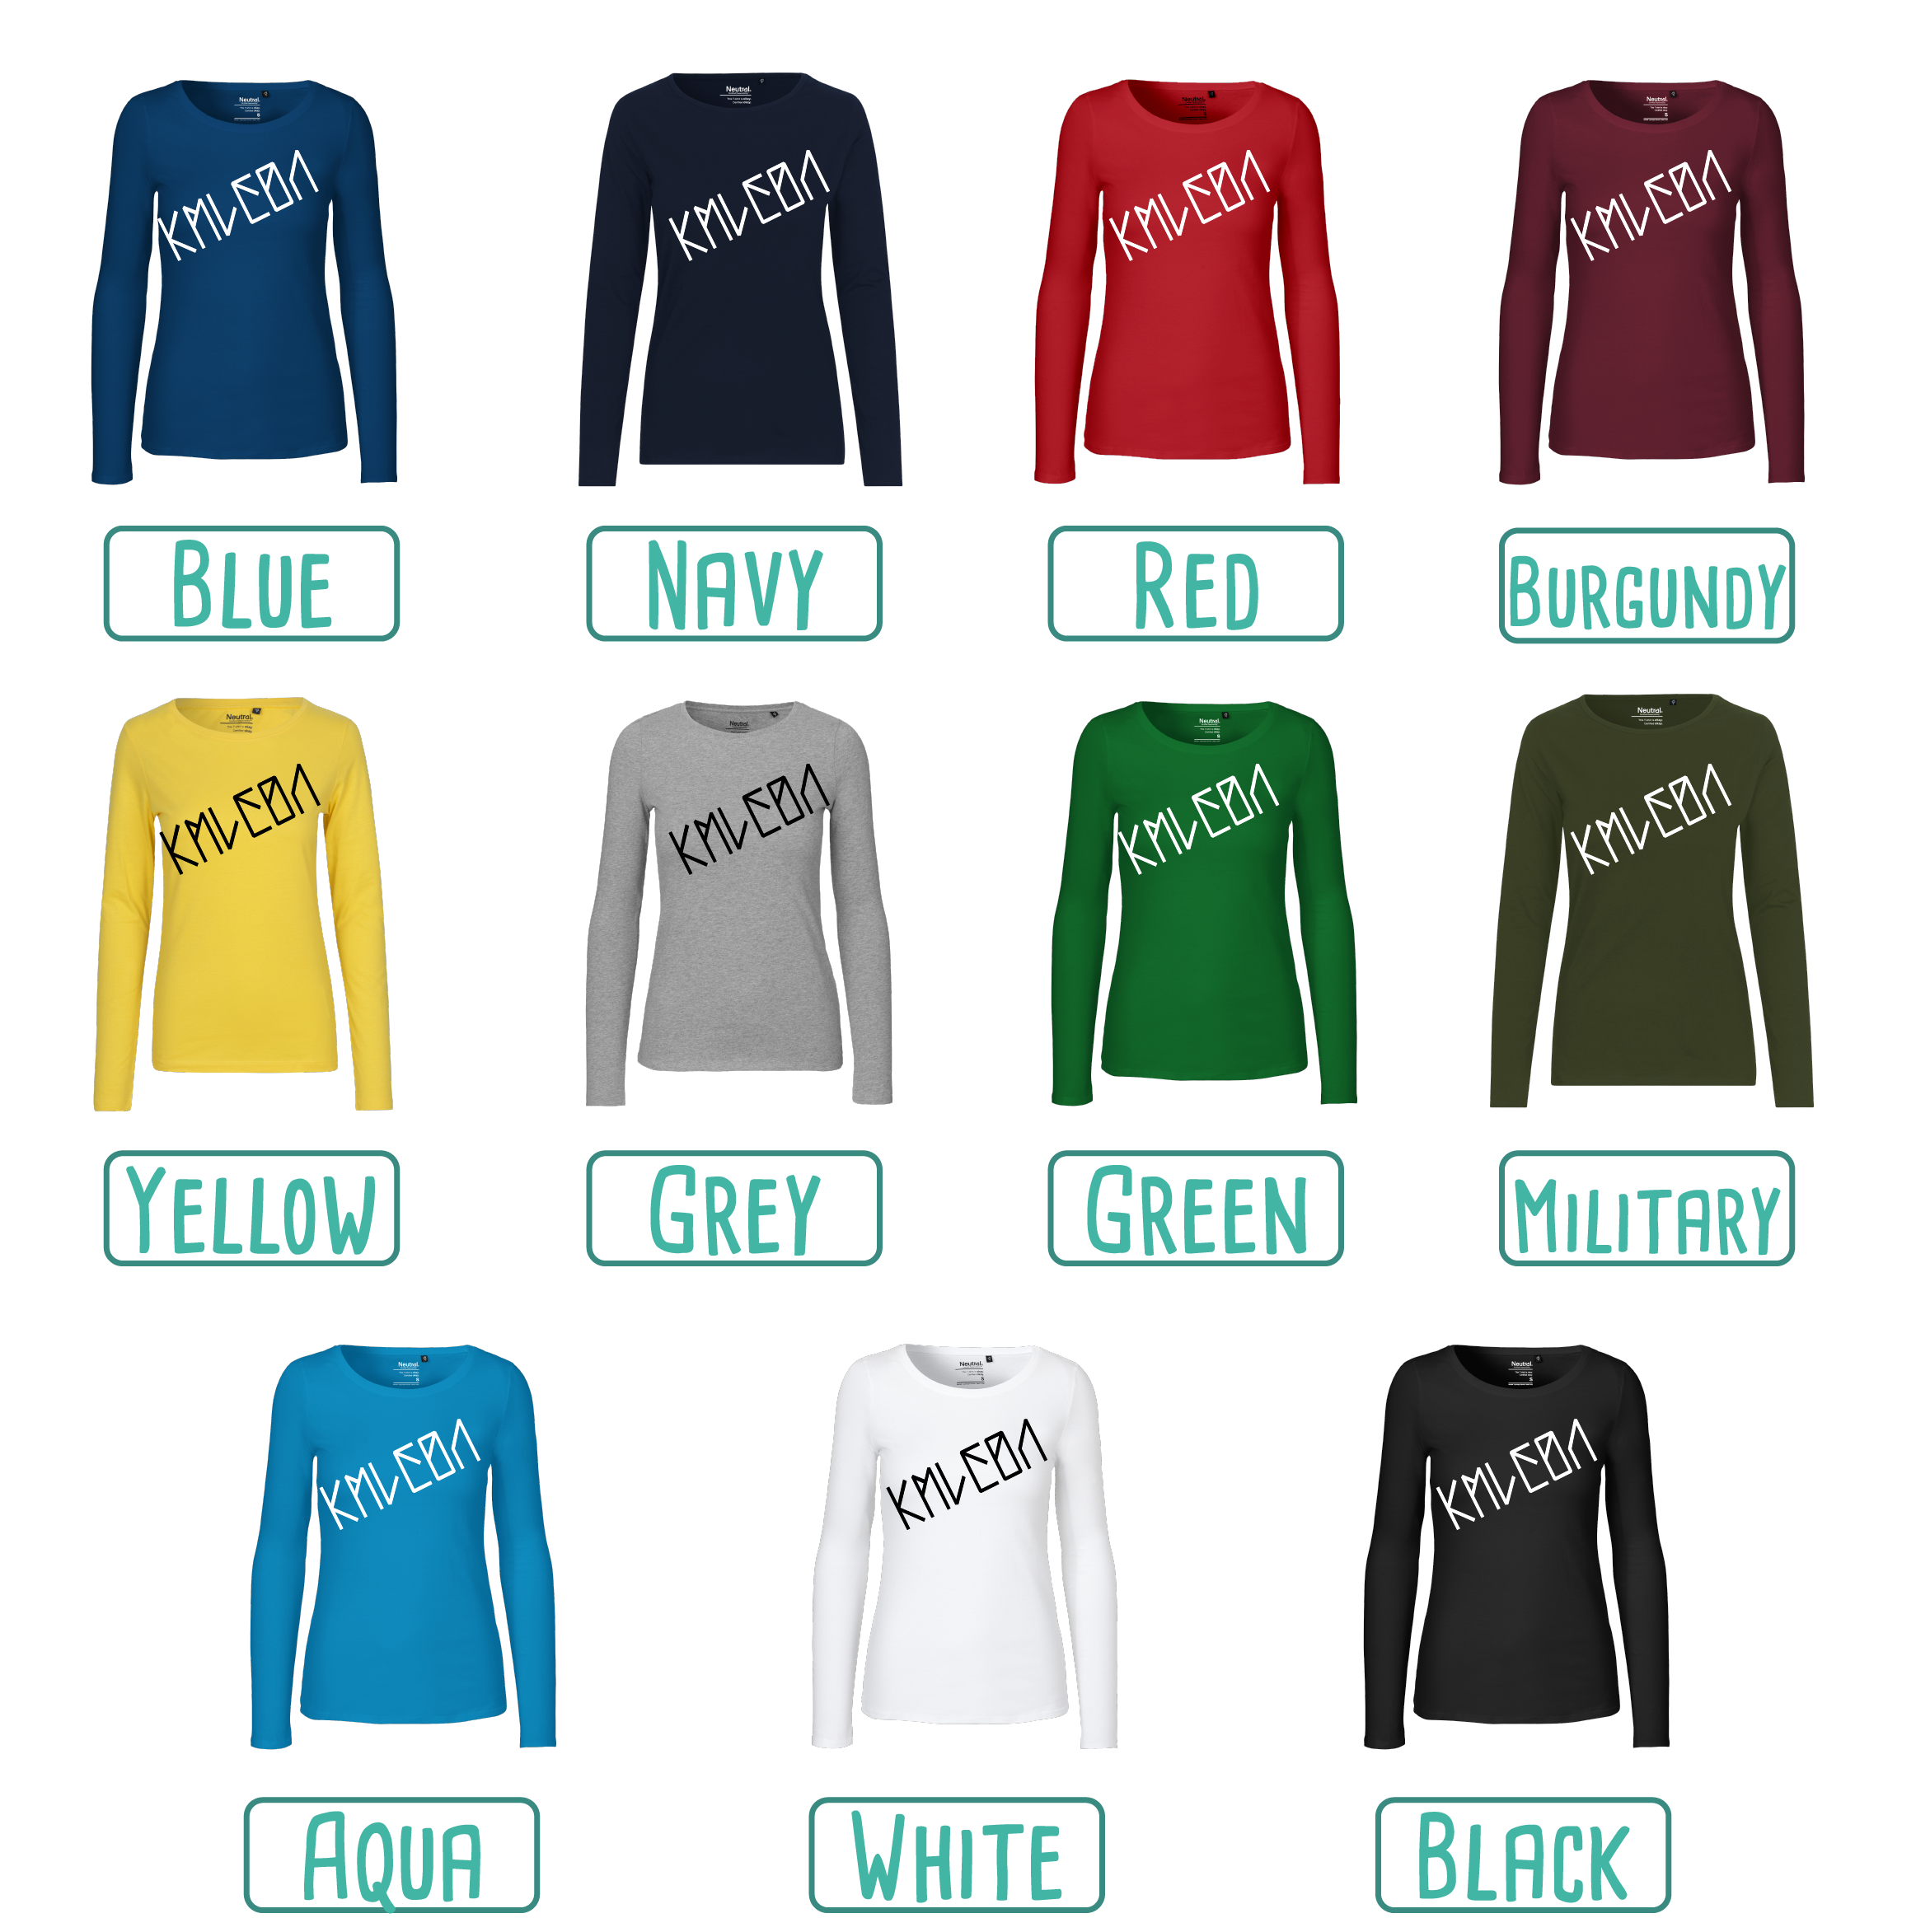 Colour options for adult shirts with long sleeves by KMLeon.